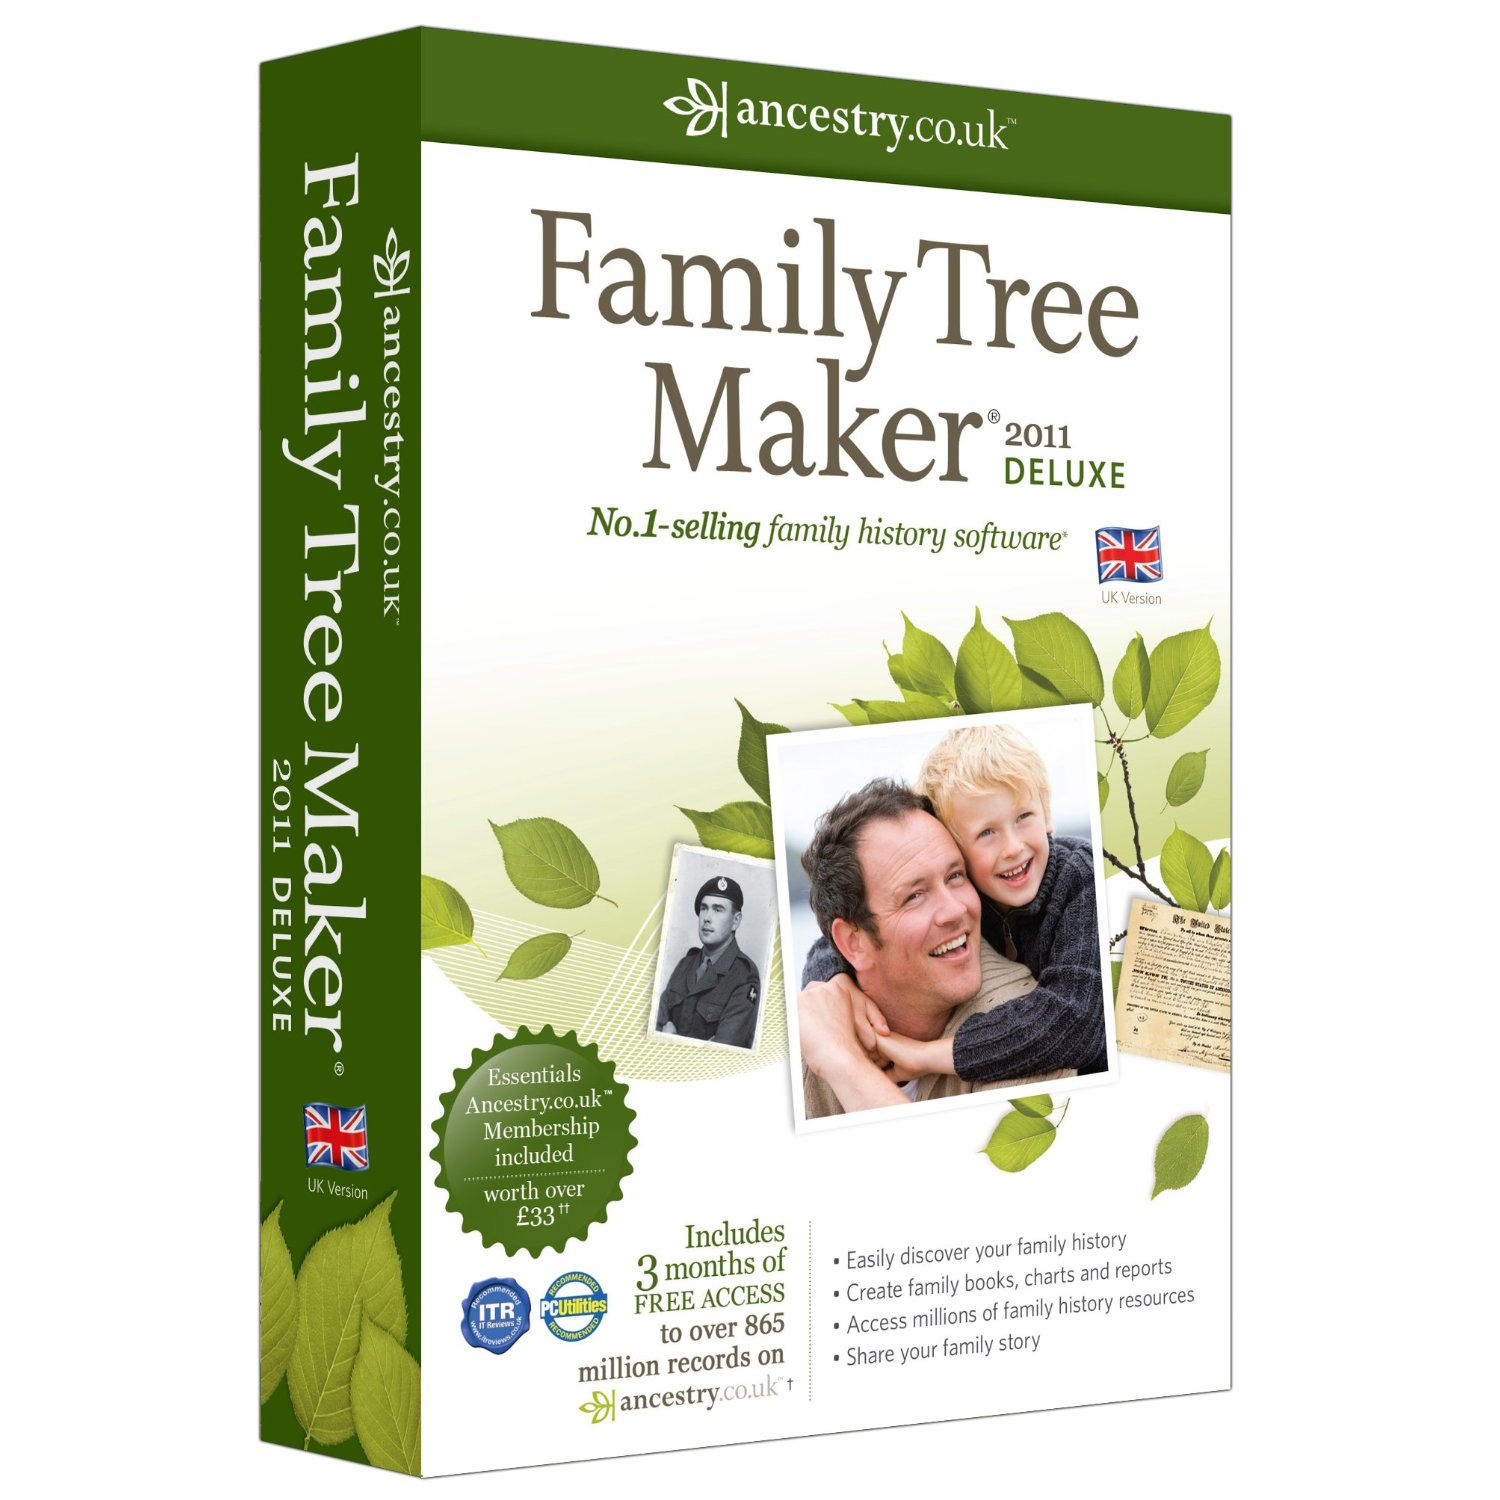 family tree maker 2011 for 20 years family tree maker has been the 1